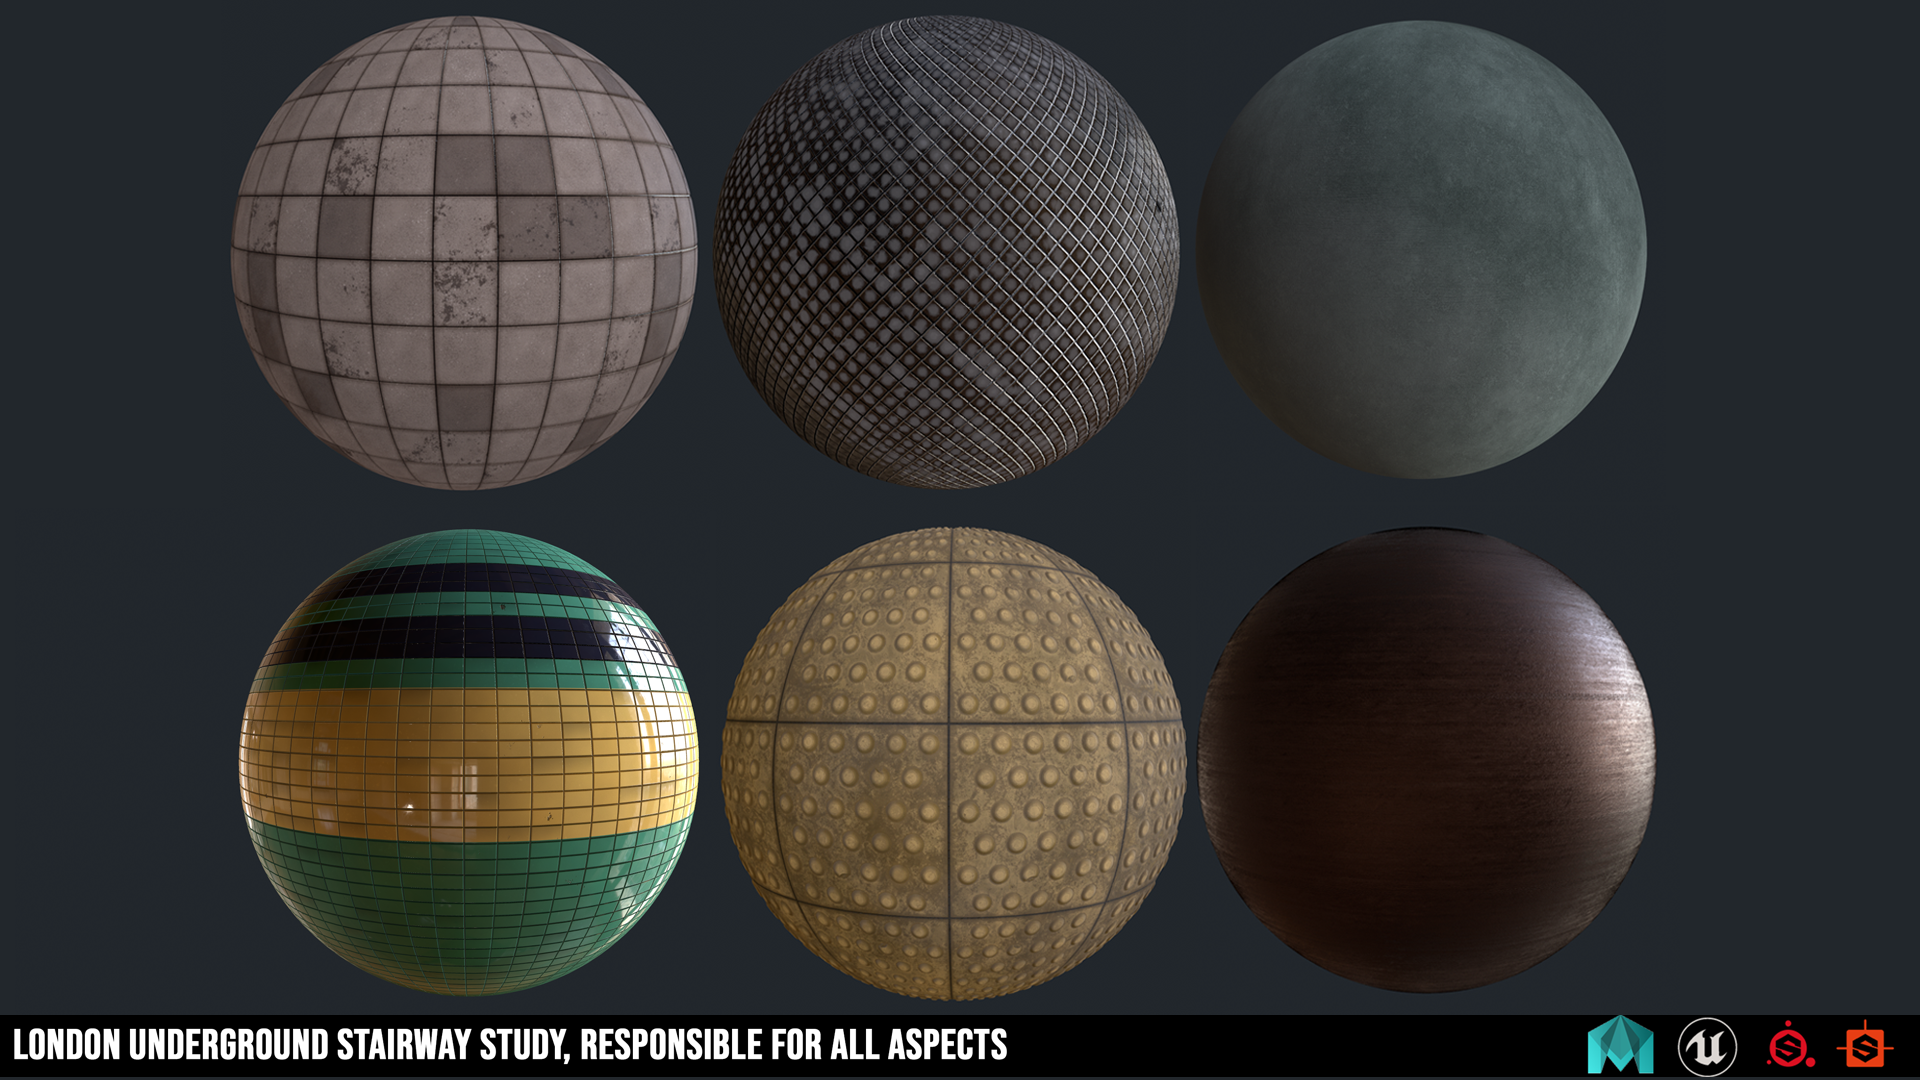 LondonUndergroundStudy_materials.png